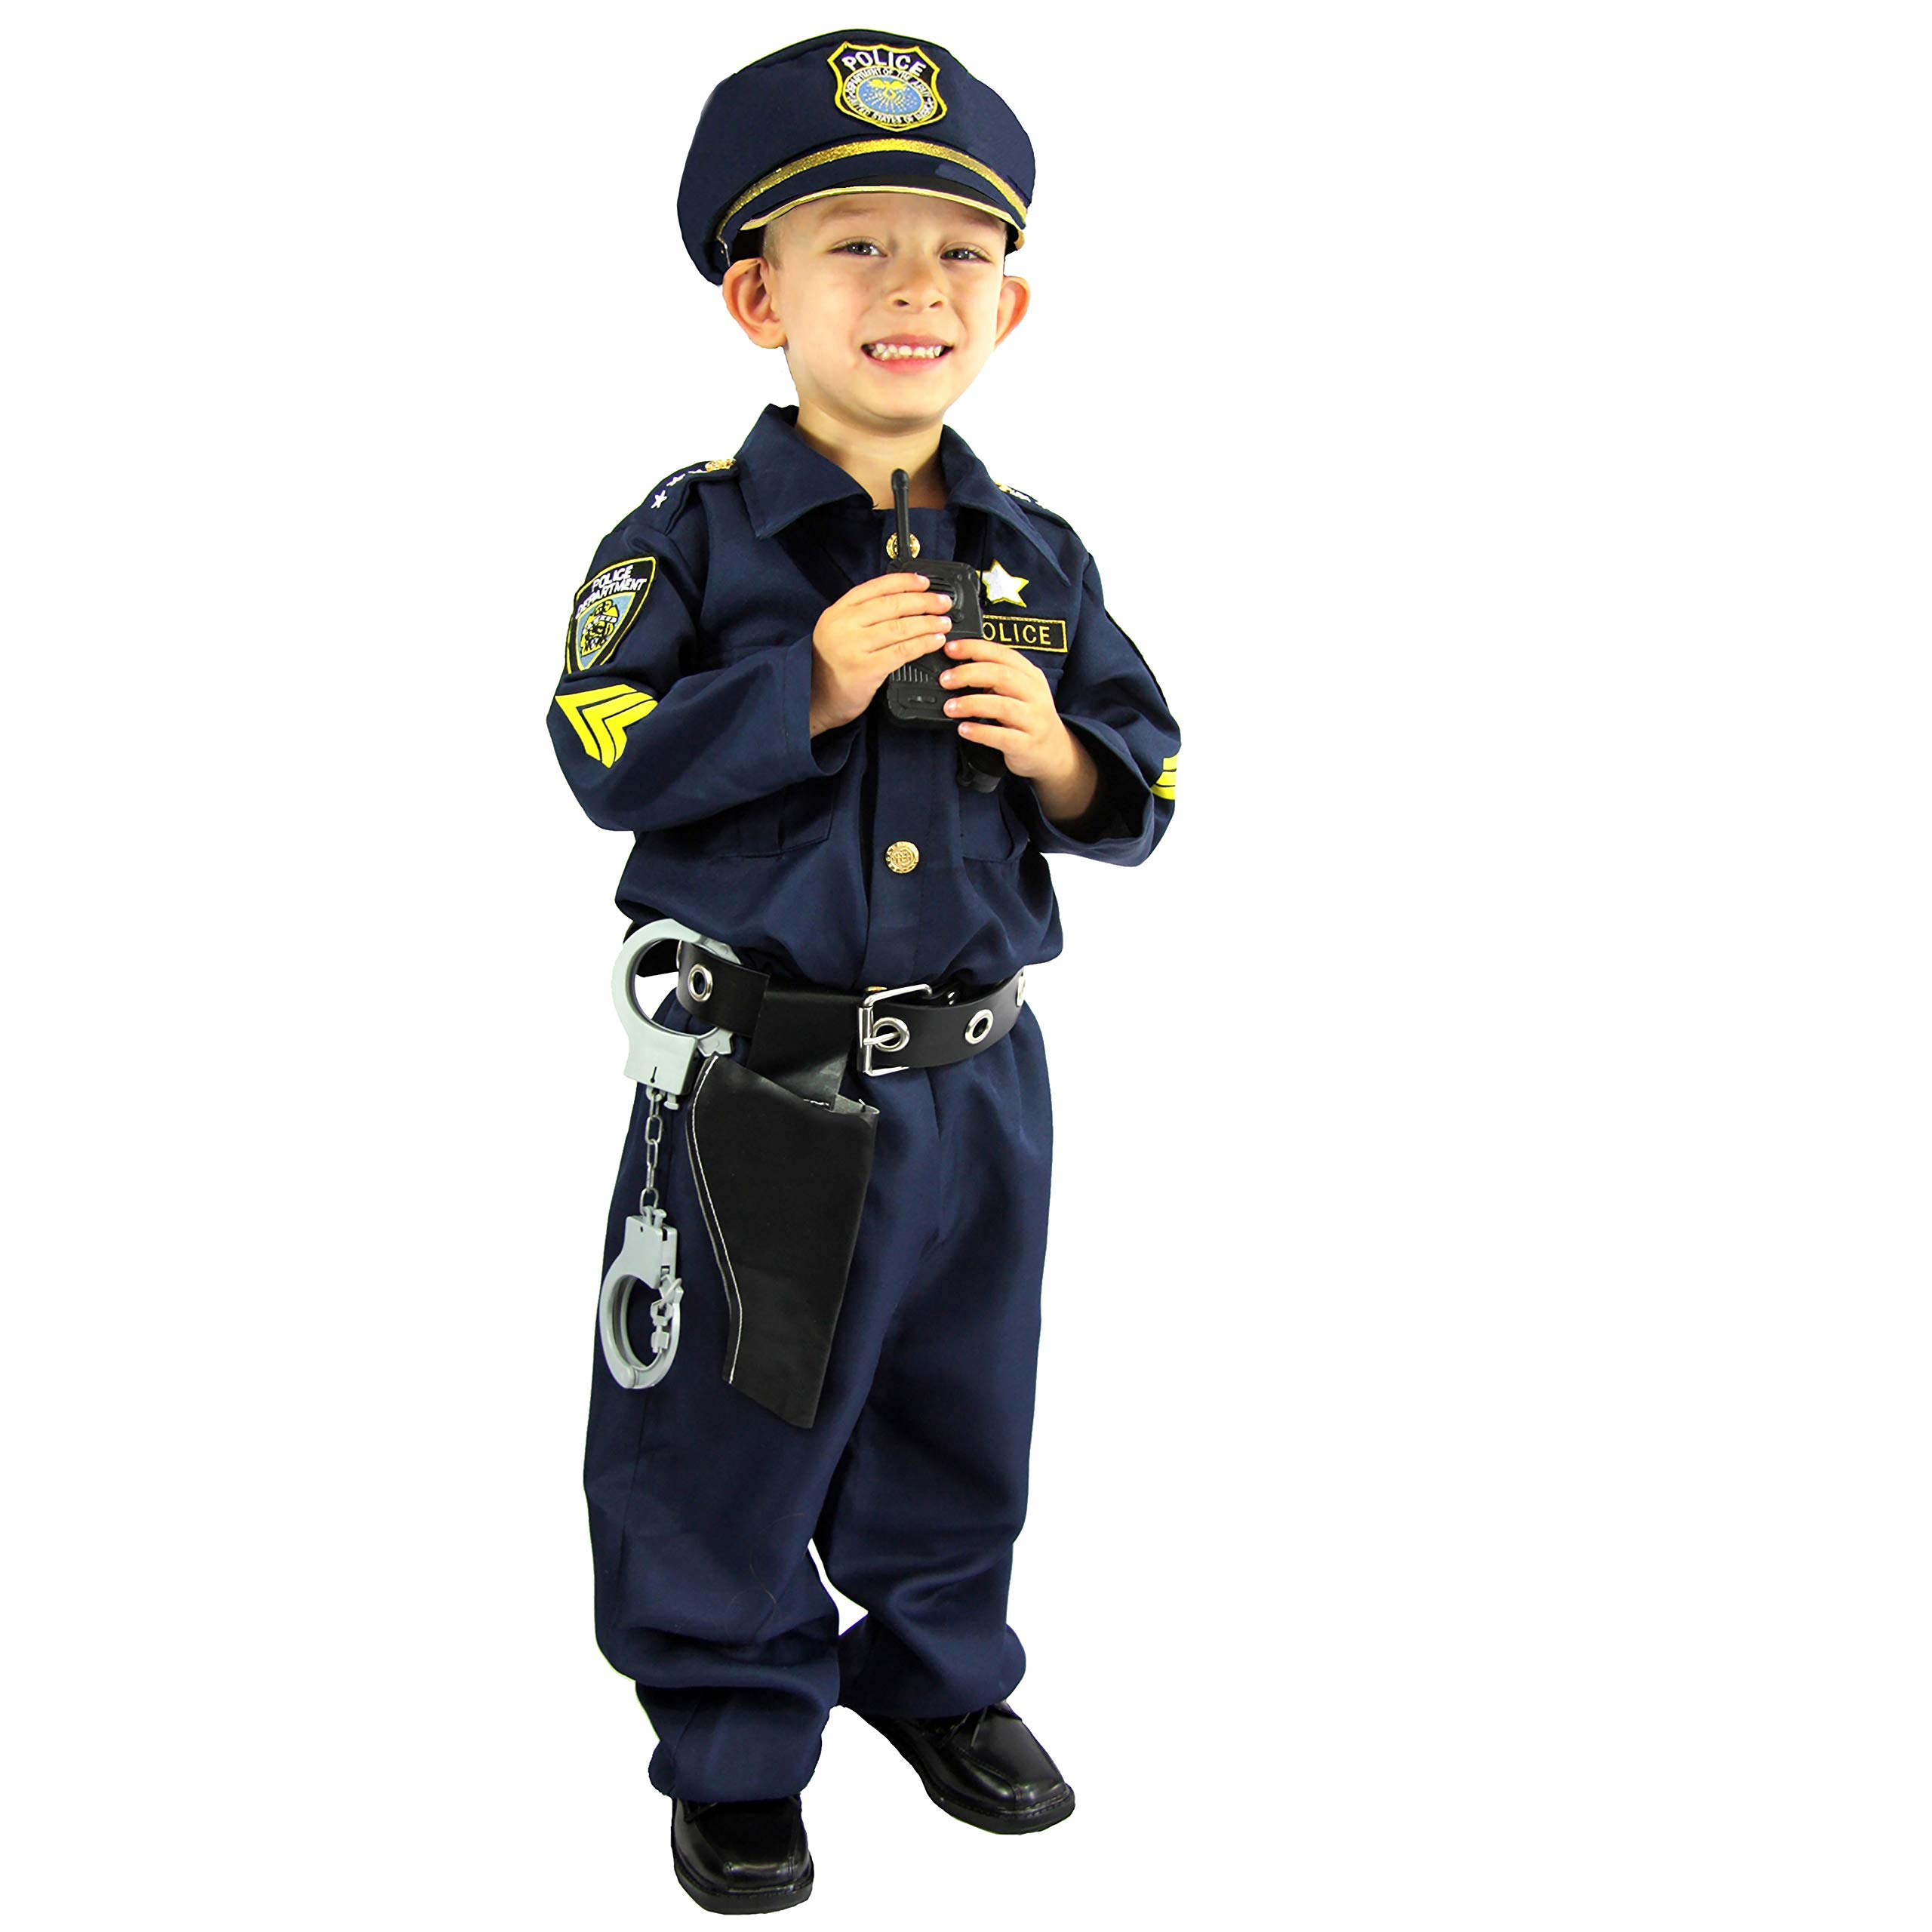 Police Costume for kids Boys Girls with Toy Role Play Kit with badge handcuffs